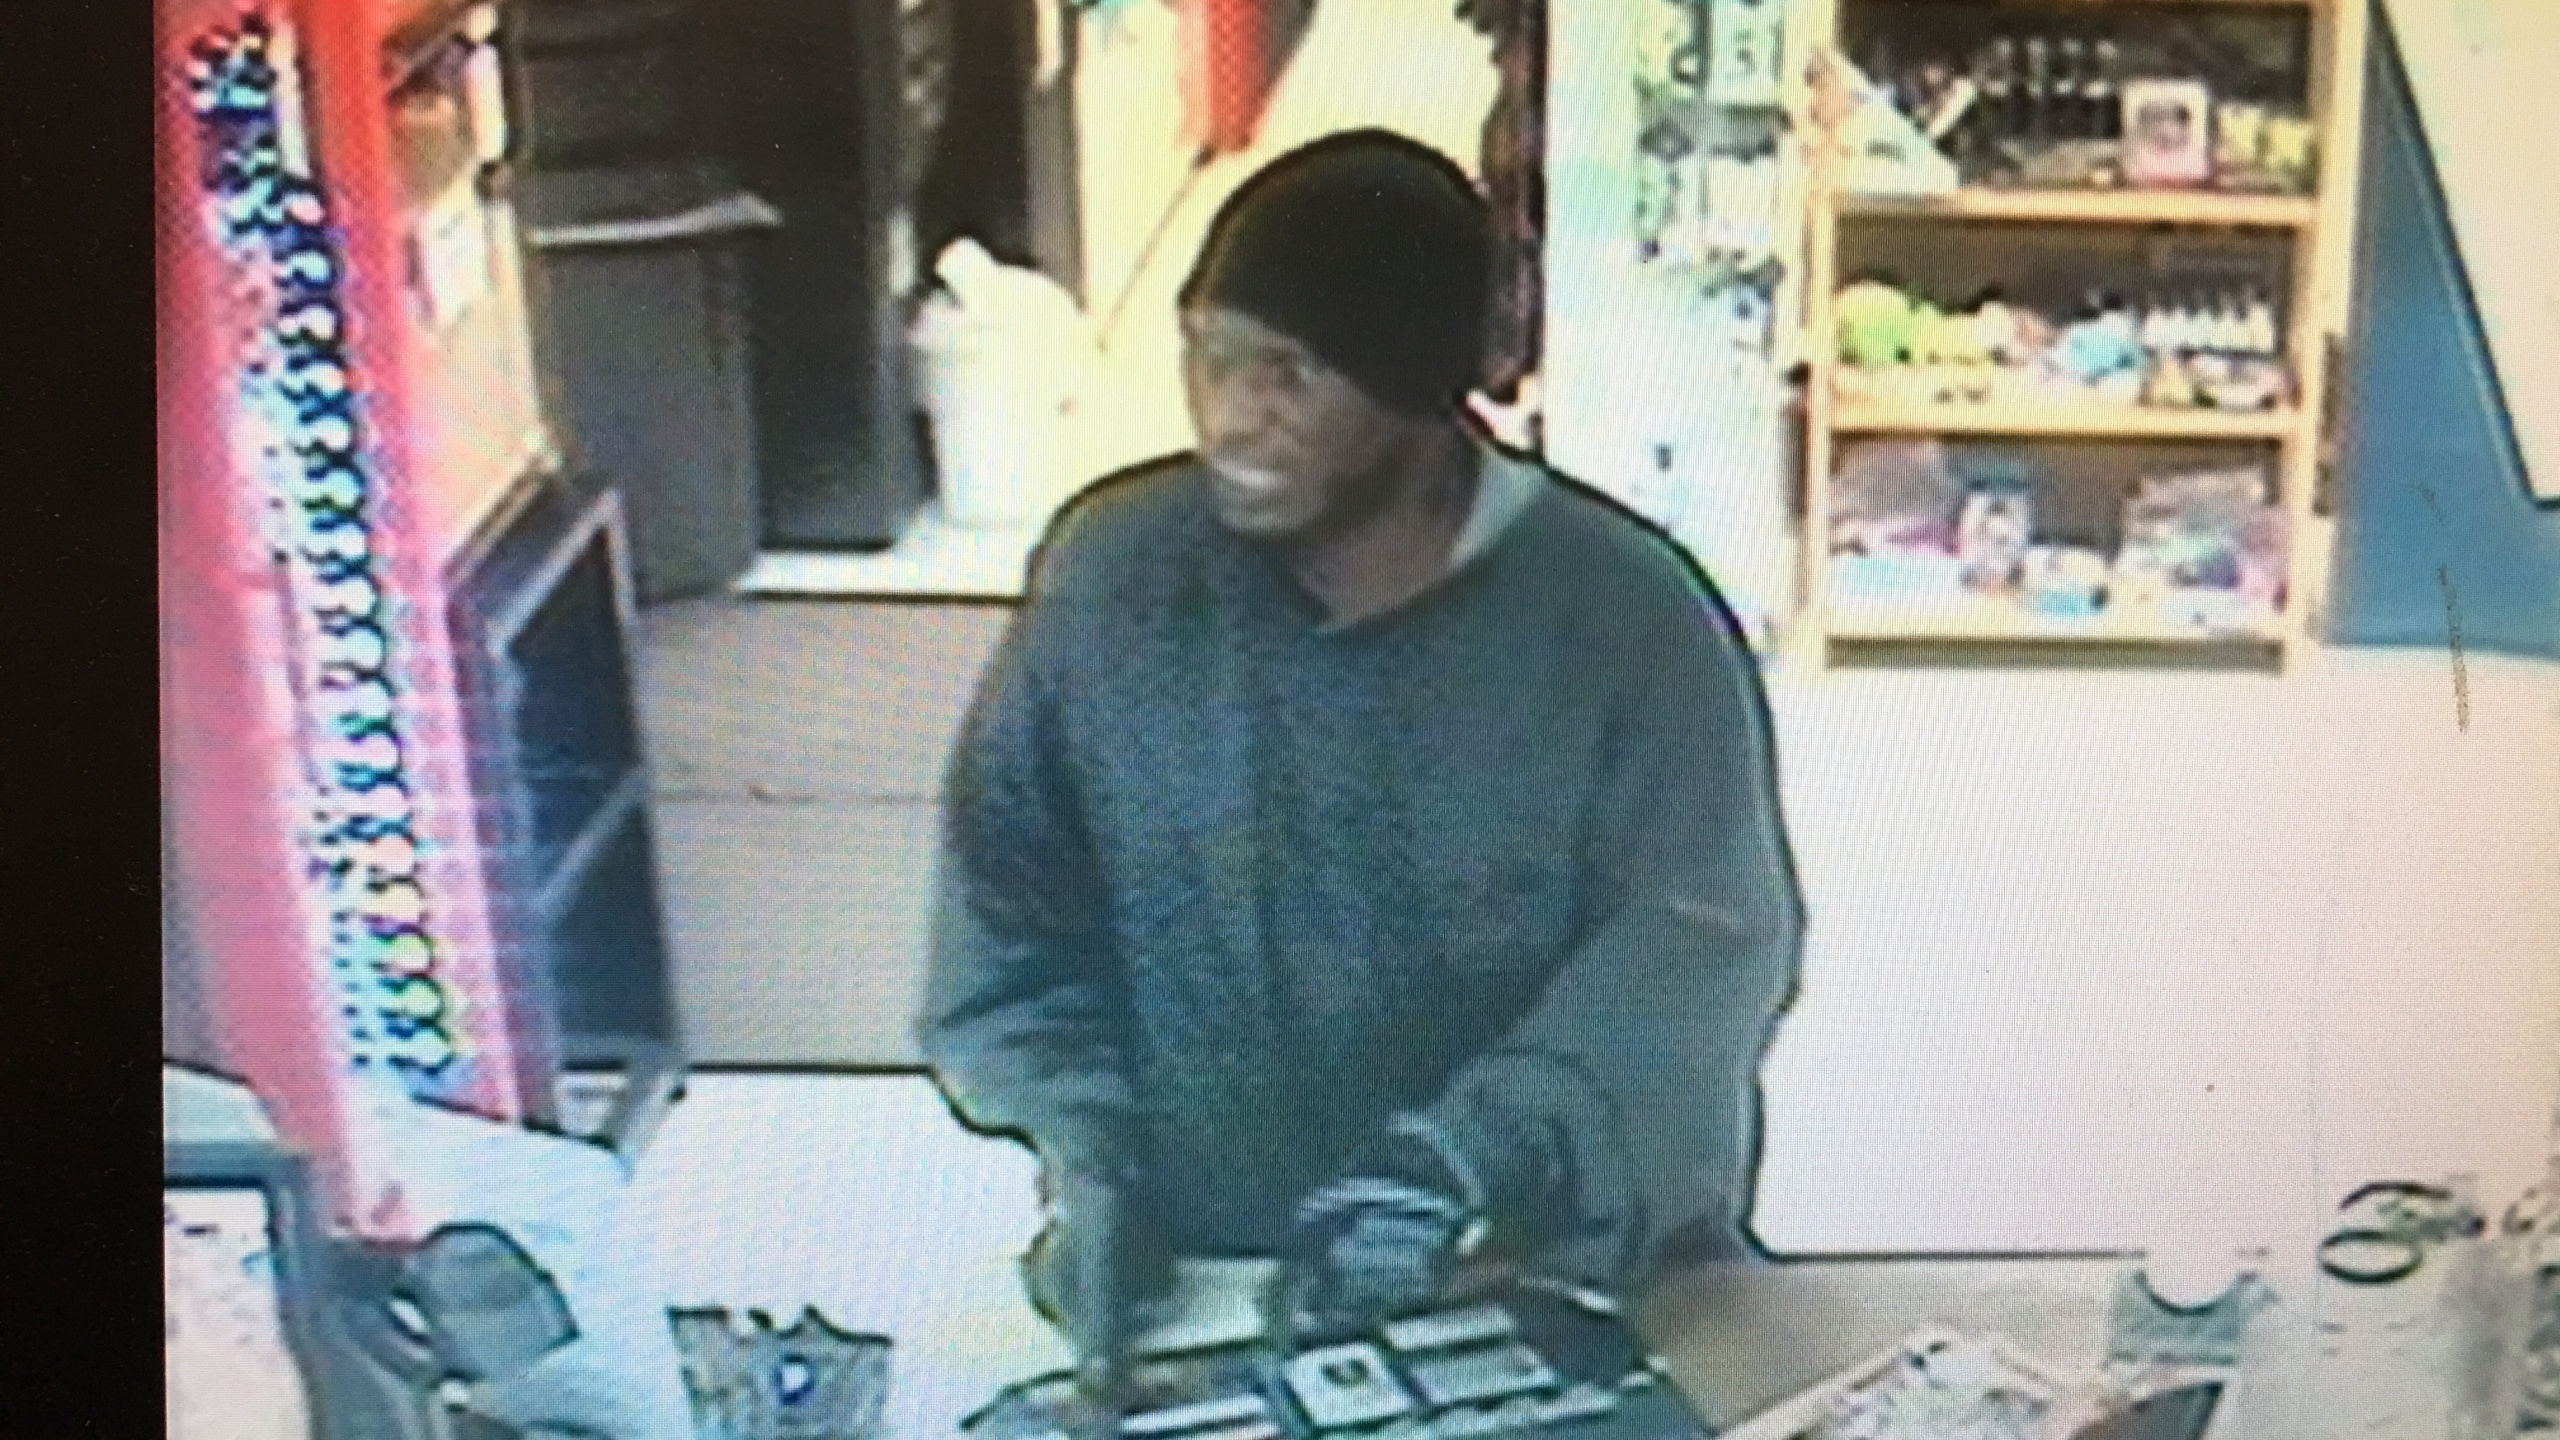 Robbery suspect in Carbon Hill